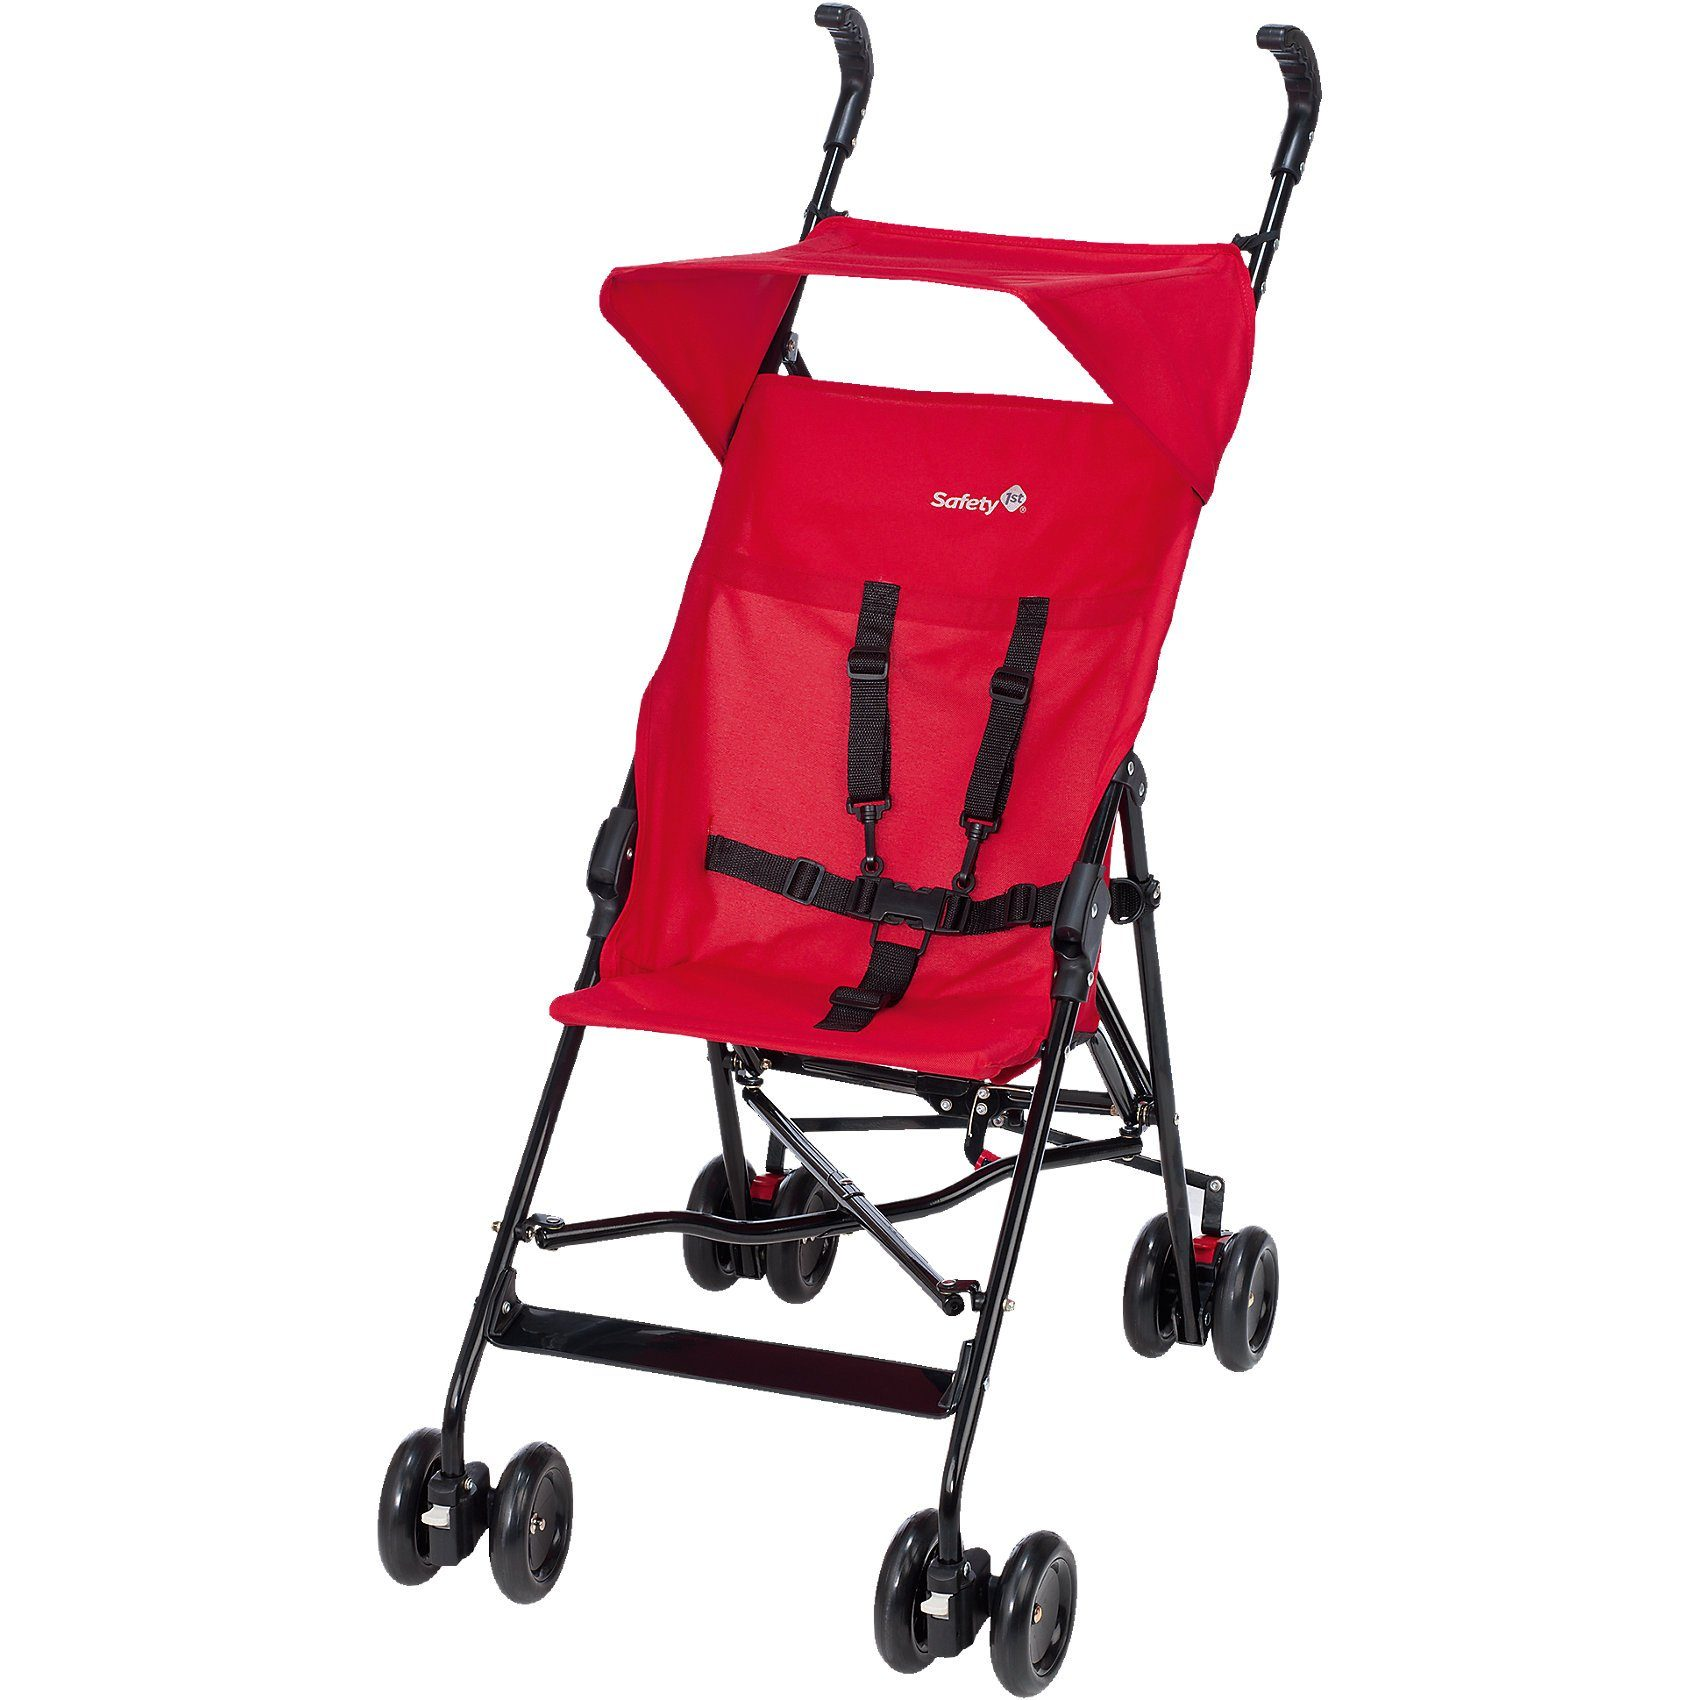 Safety 1st Buggy Peps inkl. Sonnenverdeck, plain red, 2017